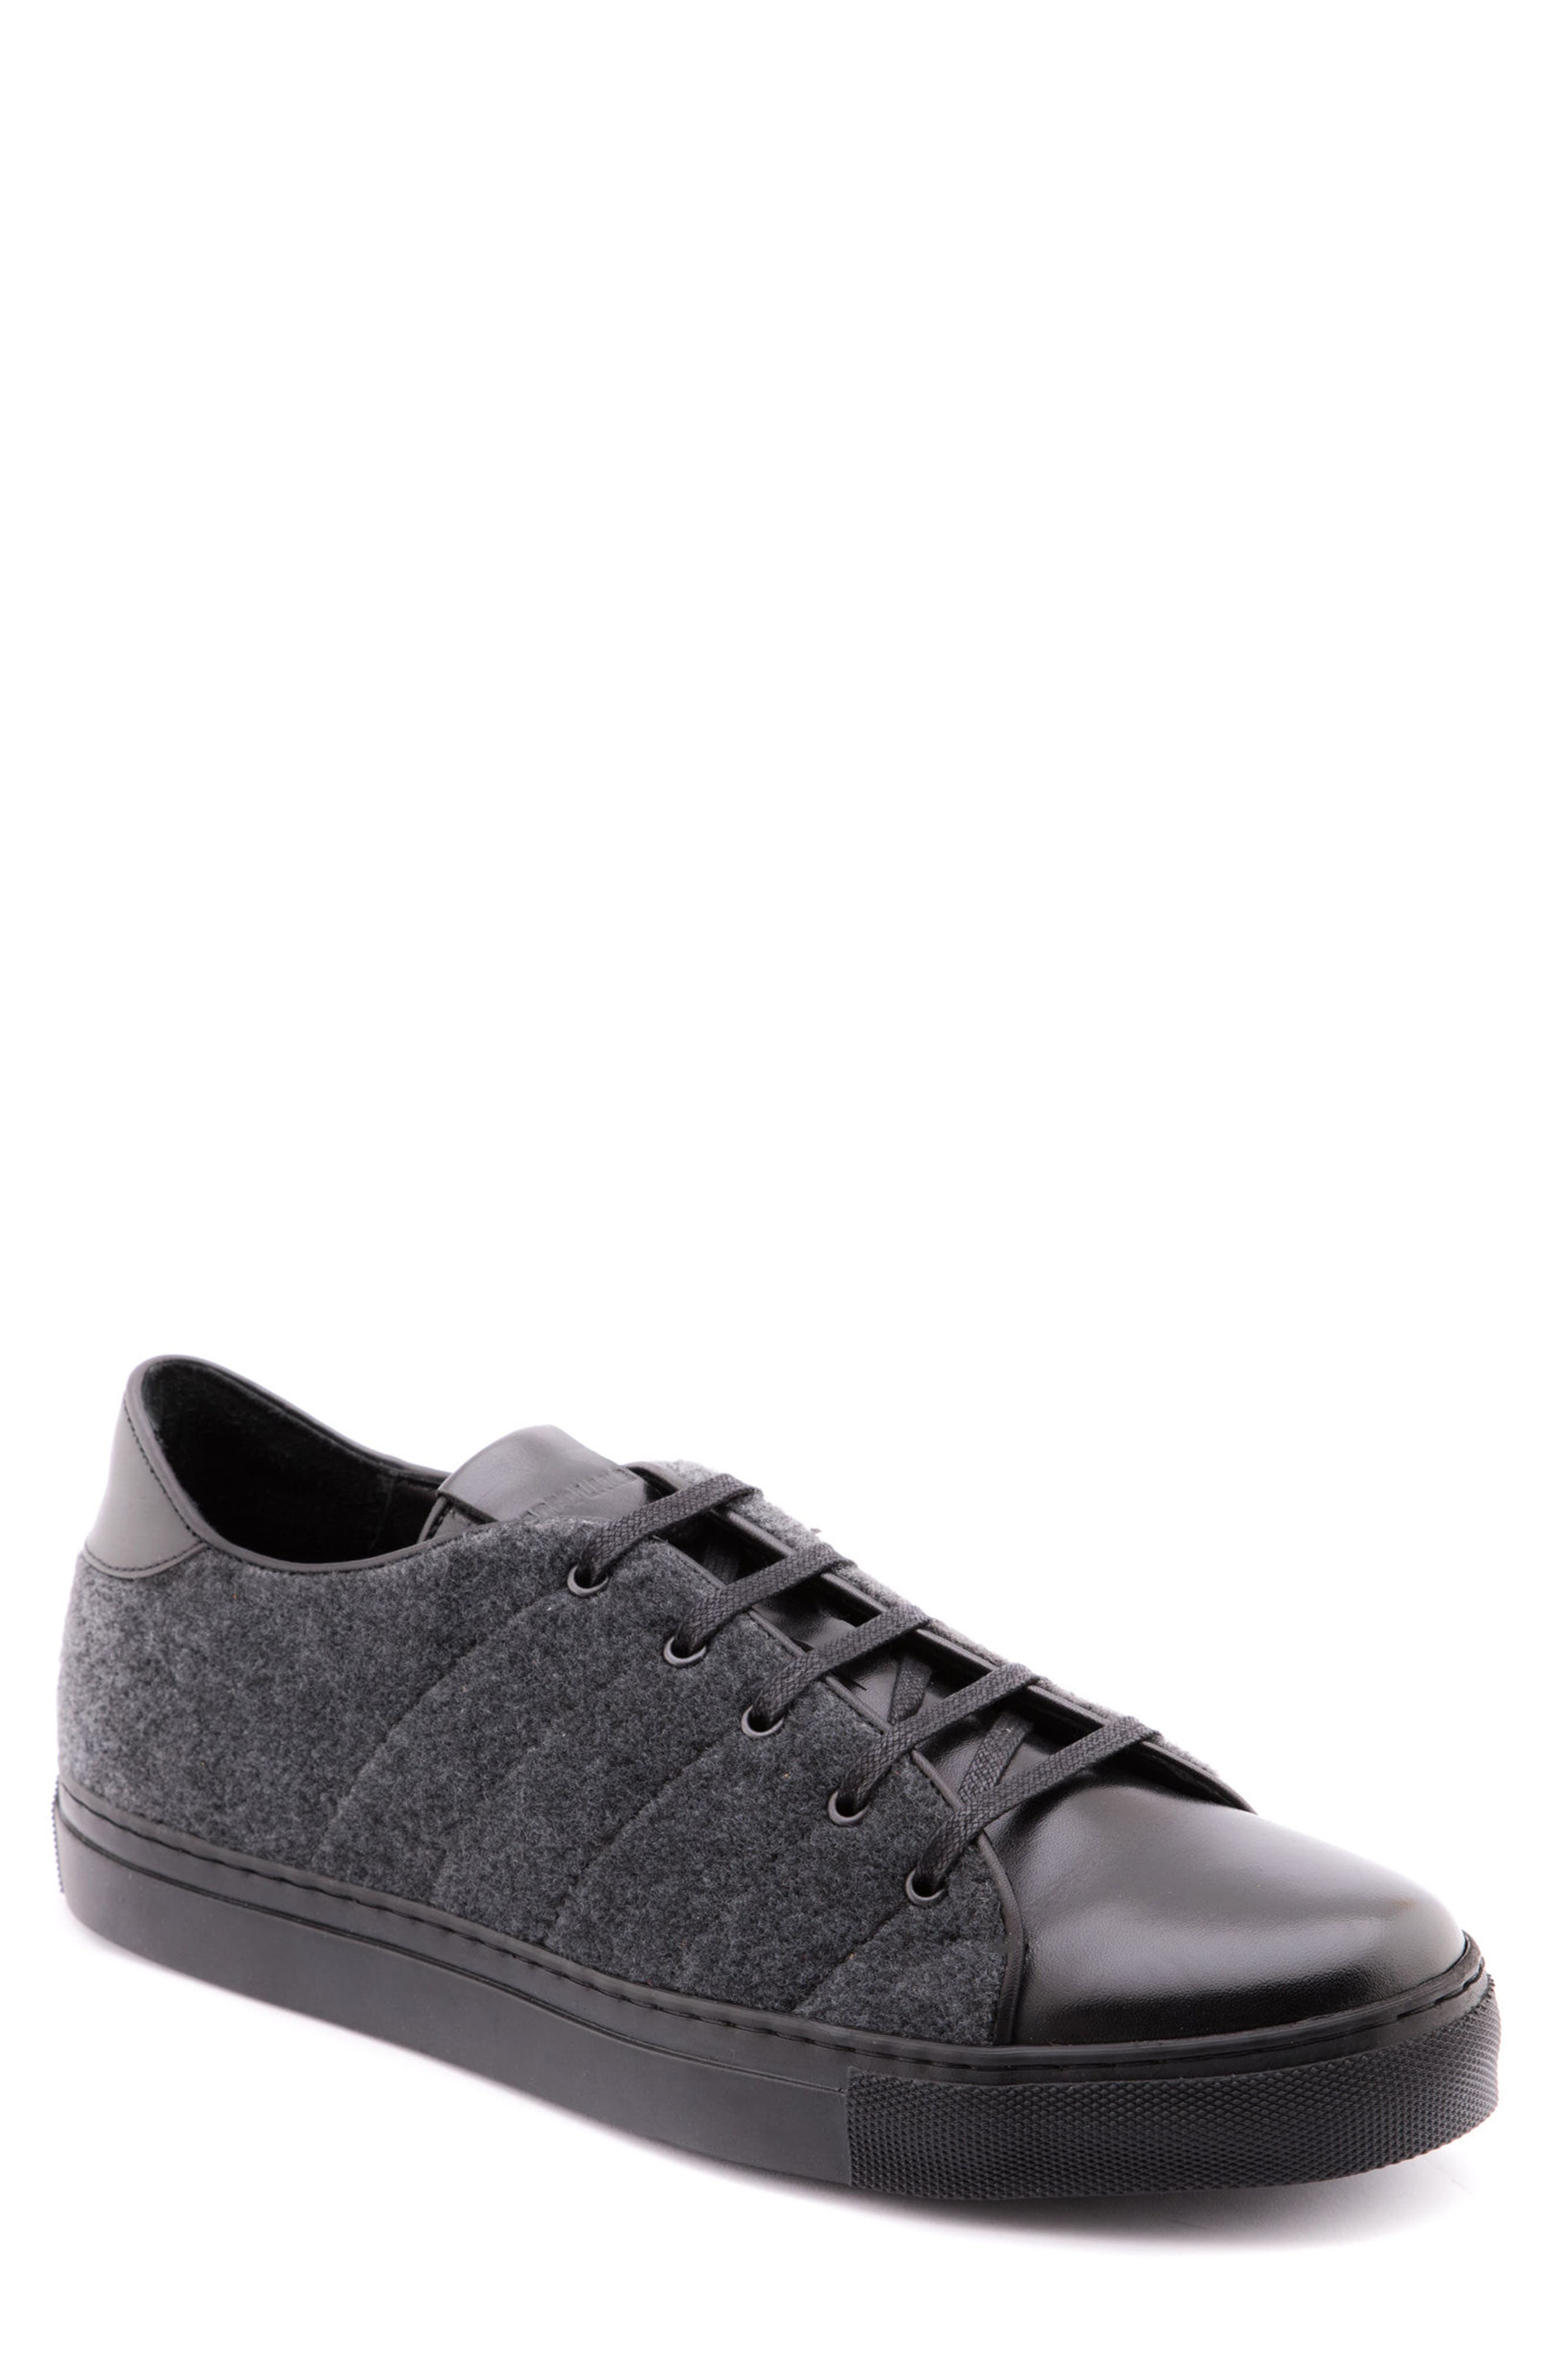 Travis Leather Sneaker,                             Main thumbnail 1, color,                             GREY